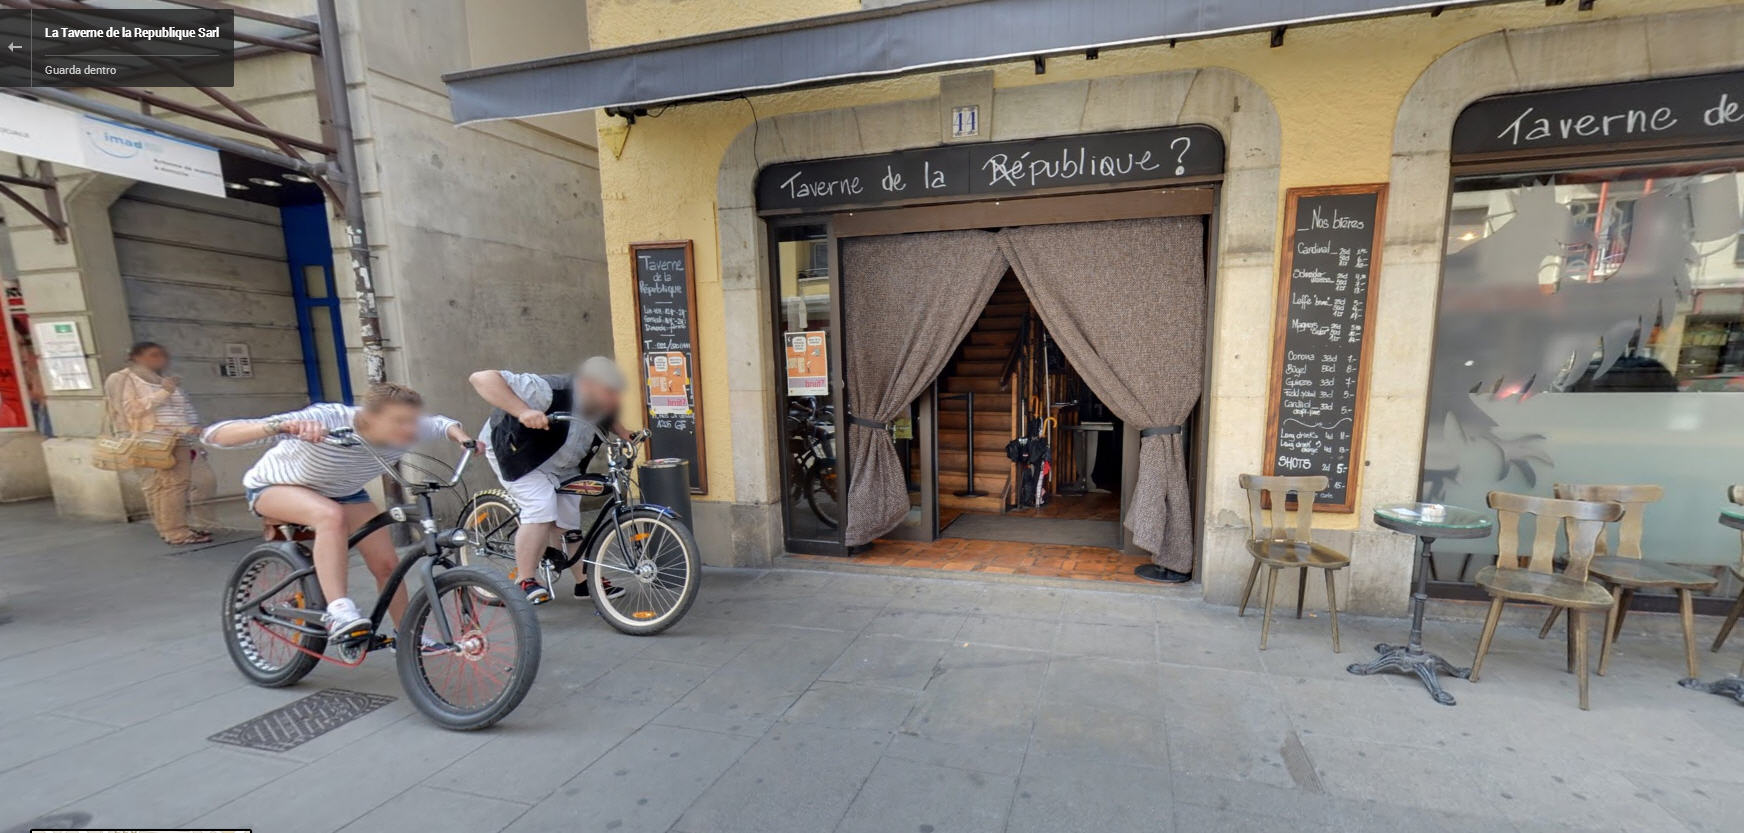 Watch these cyclists enter this bar…